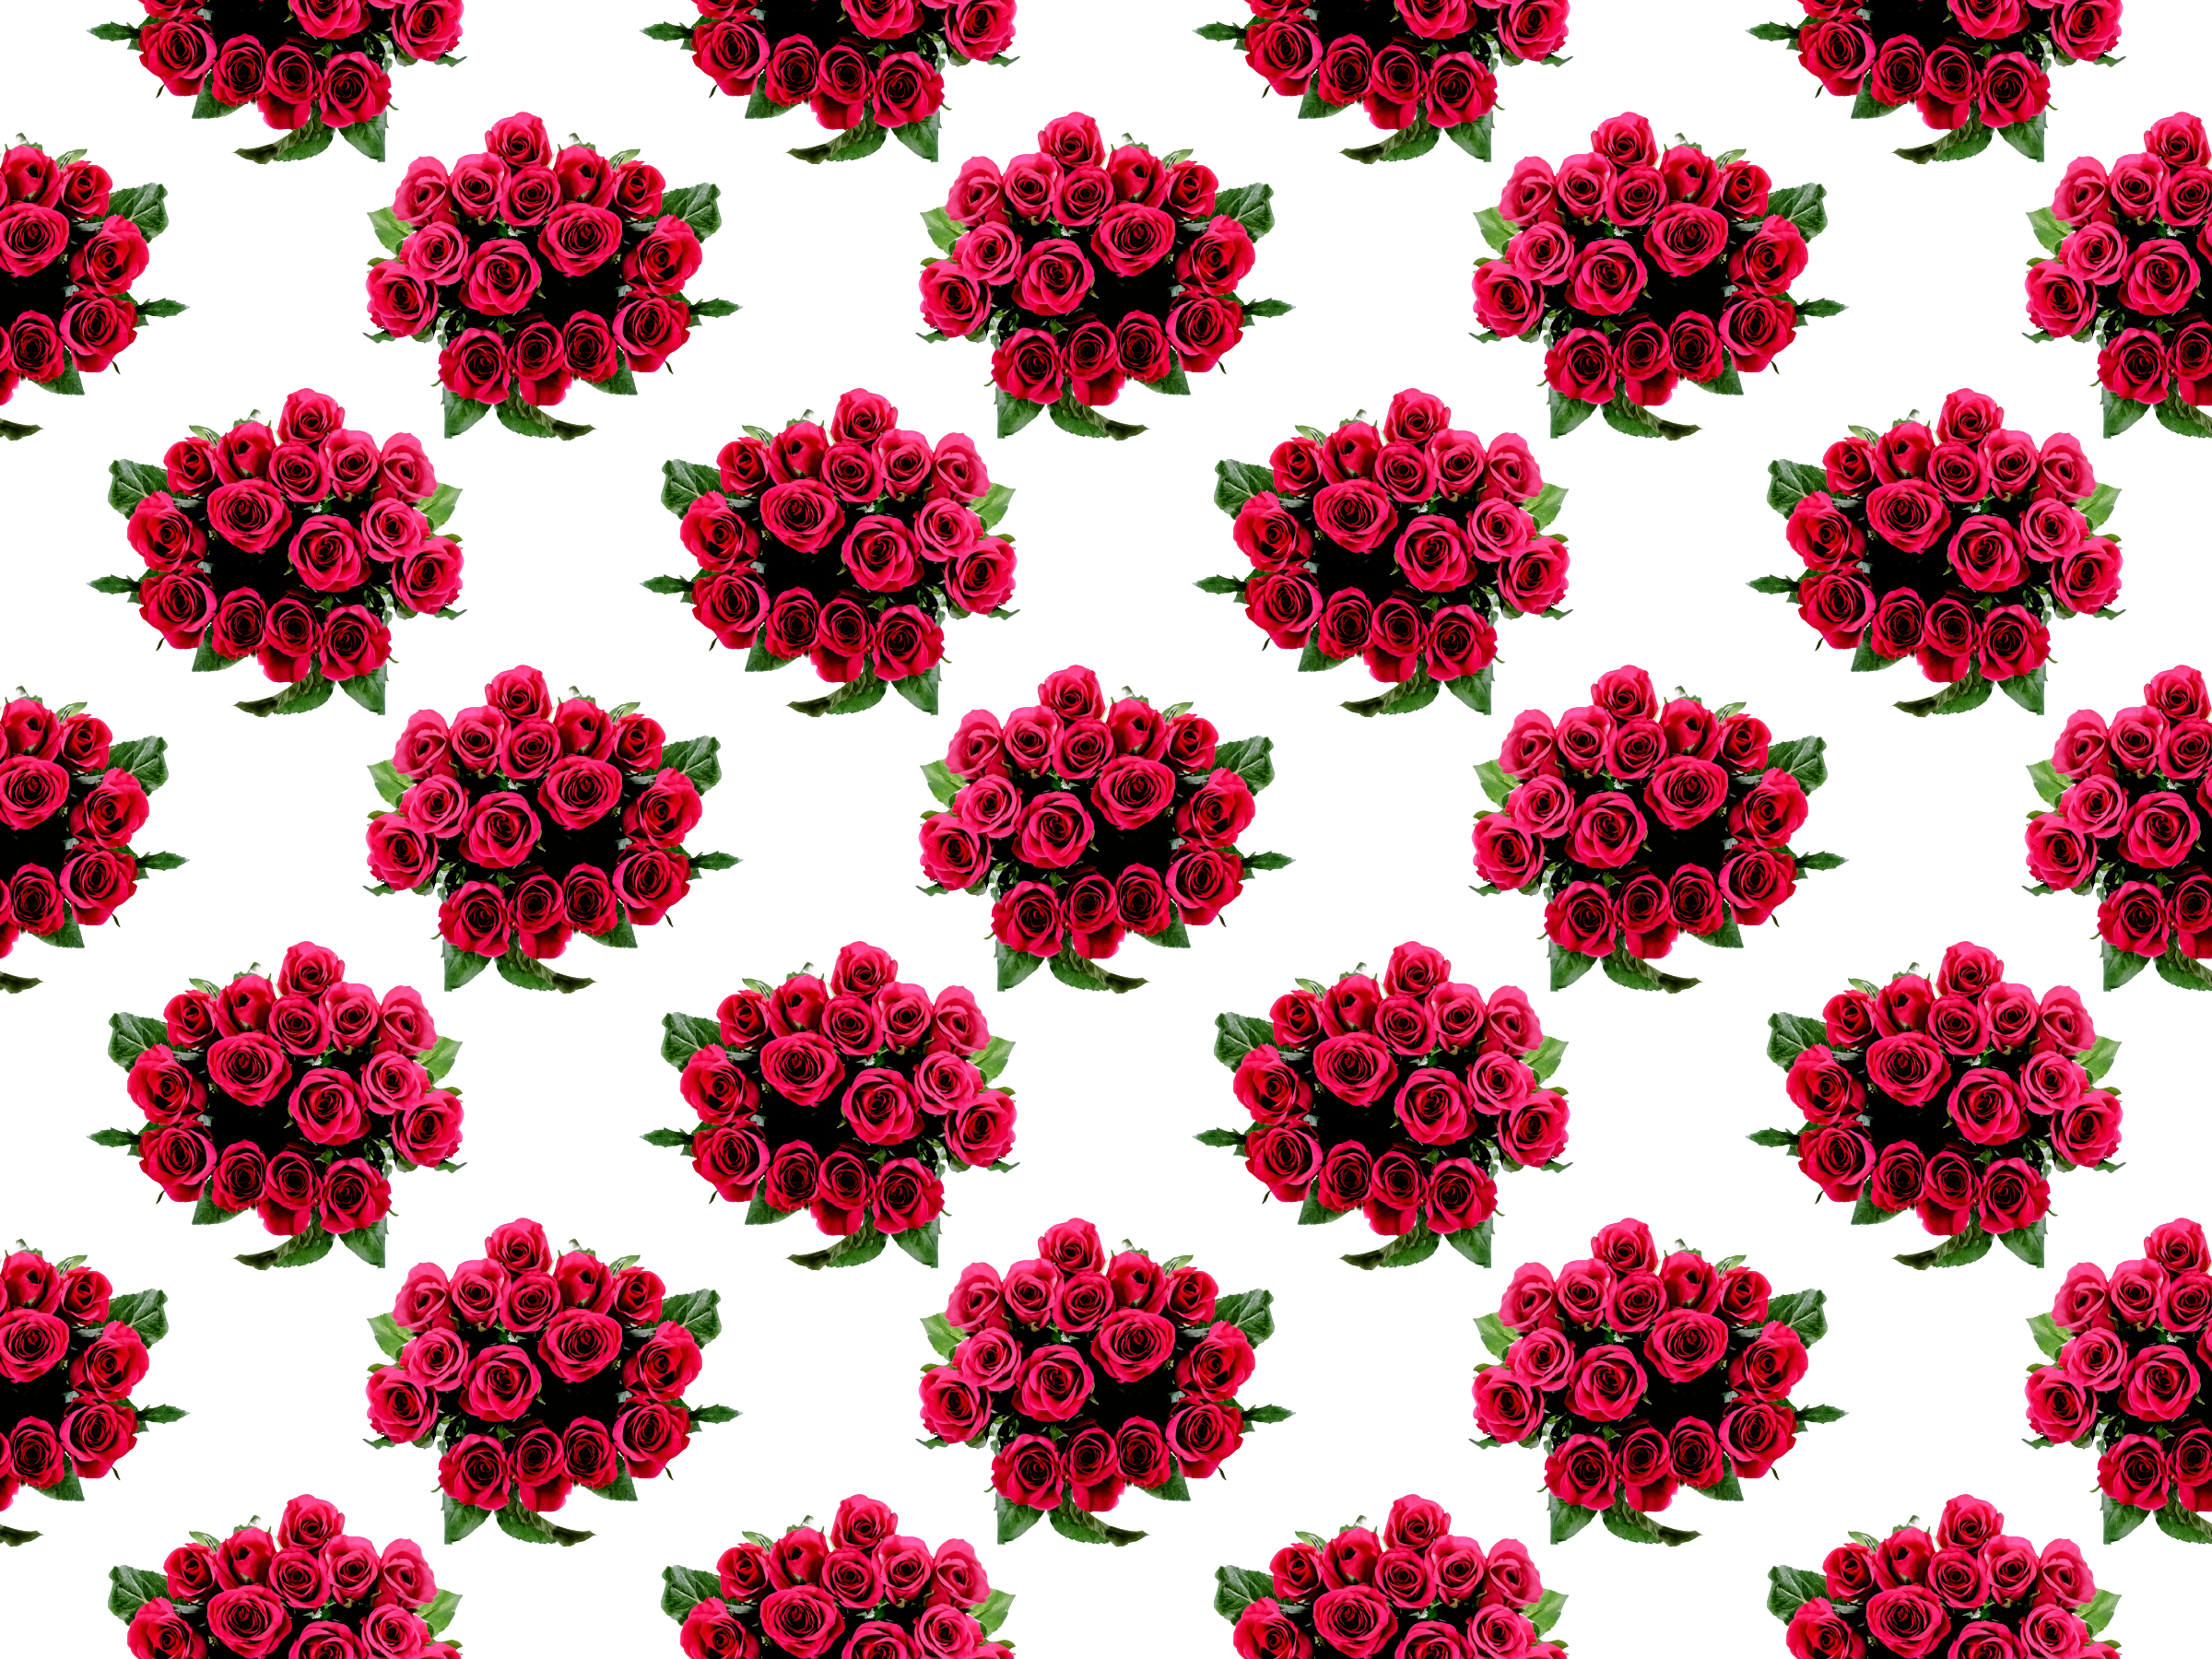 Rose pattern clipart svg stock Roses pattern clipart images gallery for free download ... svg stock